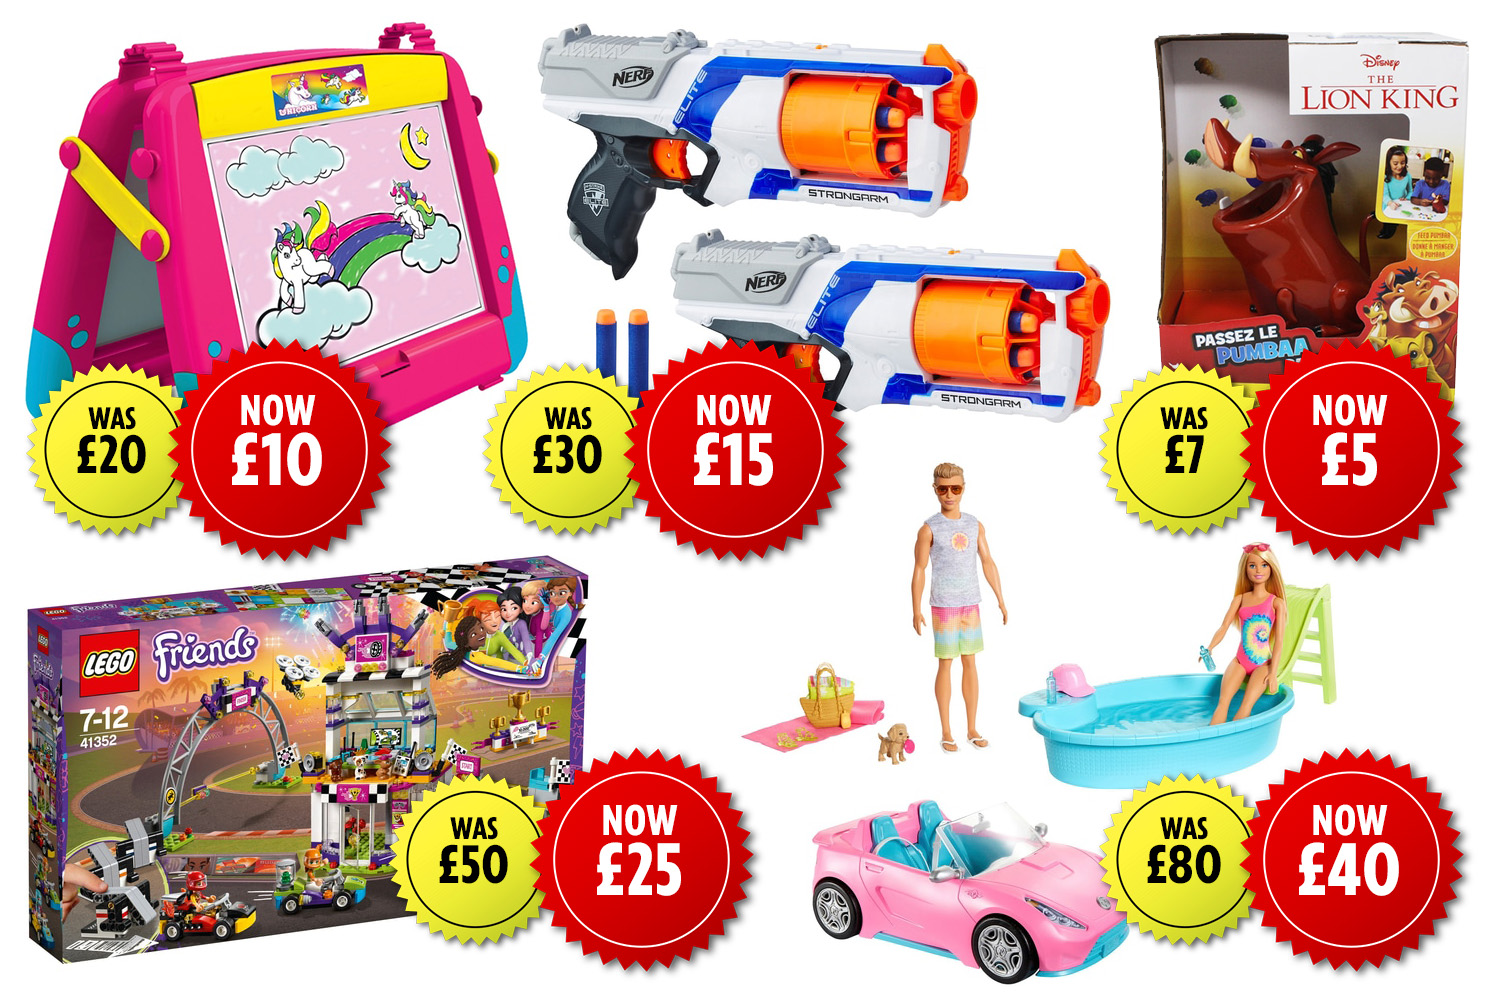 You can get half price of a range of toys at Smyths